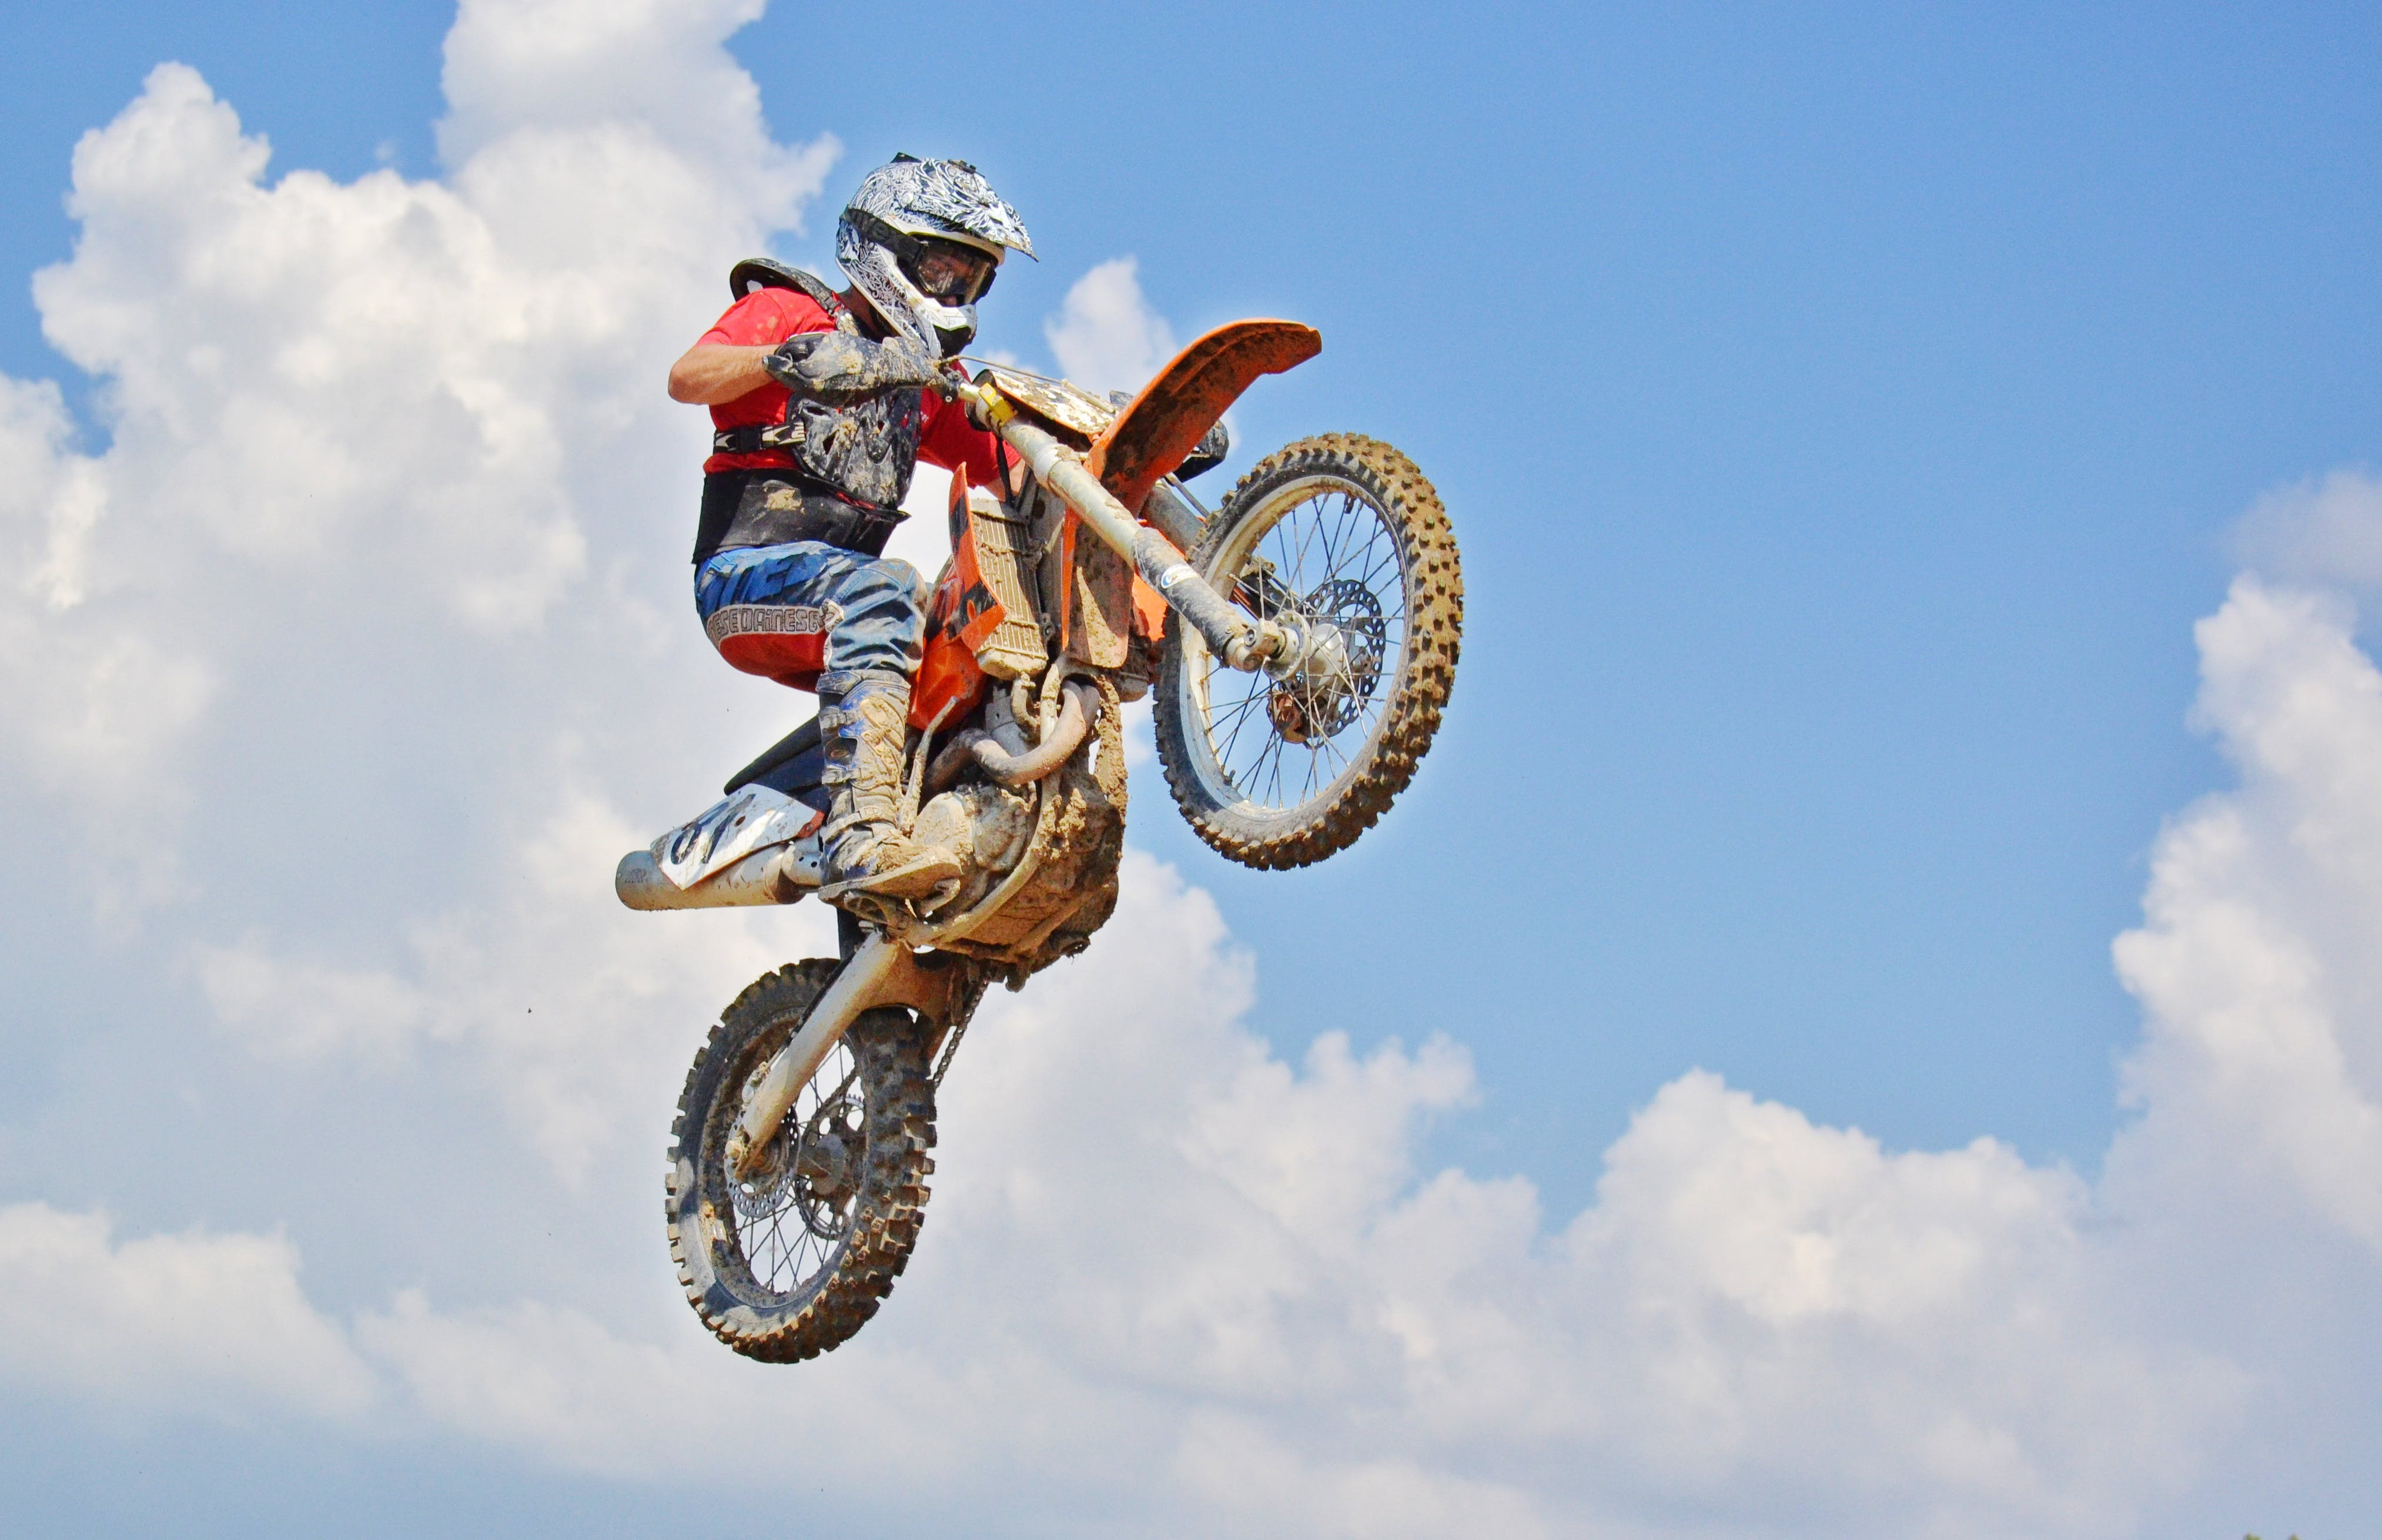 Man On A Motocross Dirt Bike